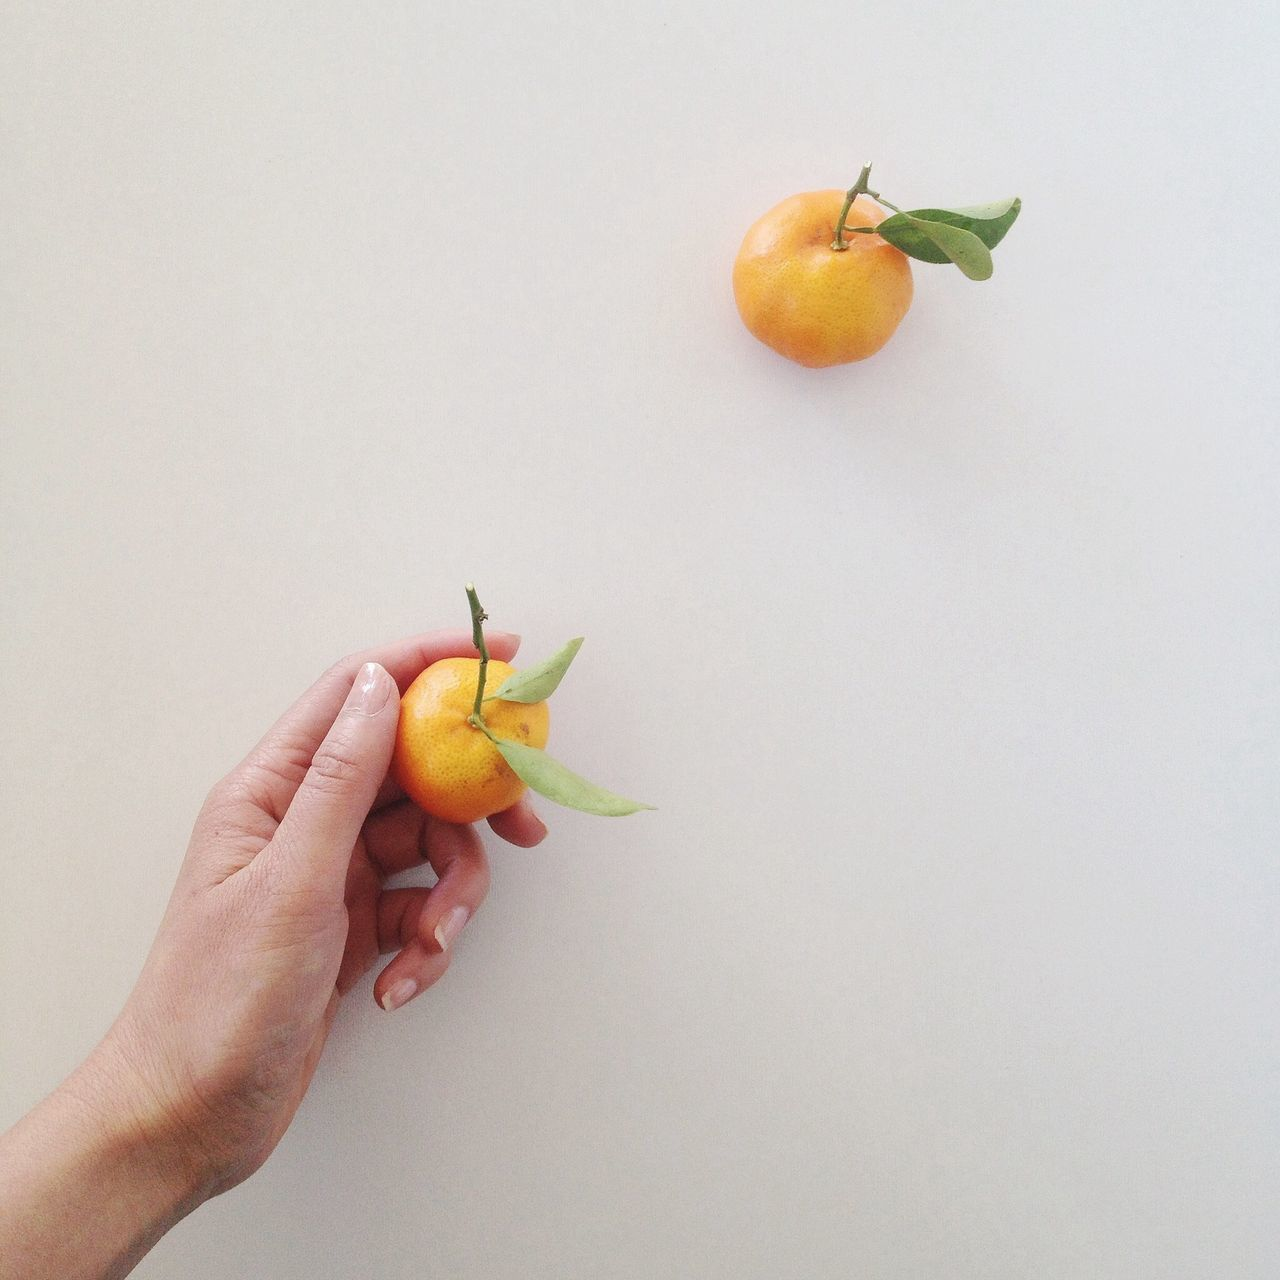 Close-up of hand holding fruit over white background